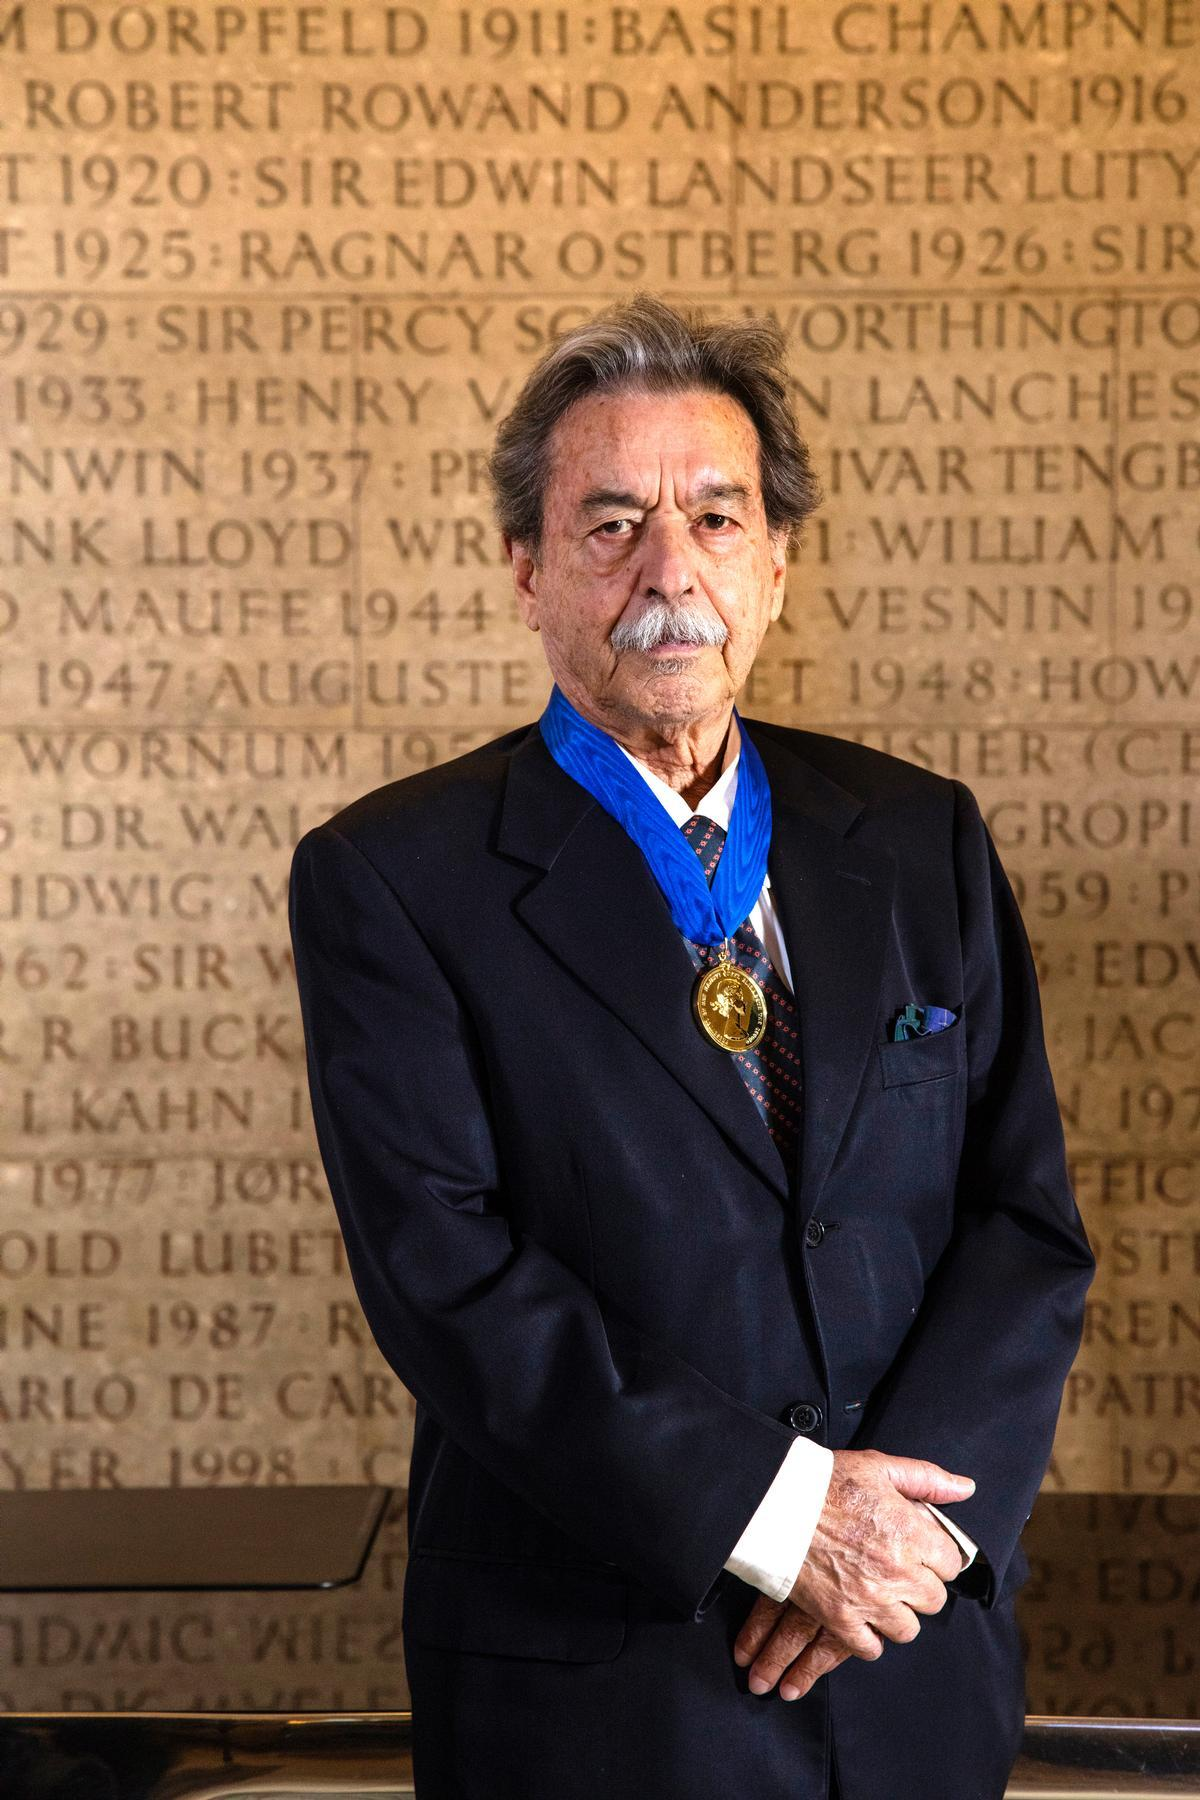 da Rocha was awarded the 2017 Royal Gold Medal for architecture by the Royal Institute of British Architects / RIBA